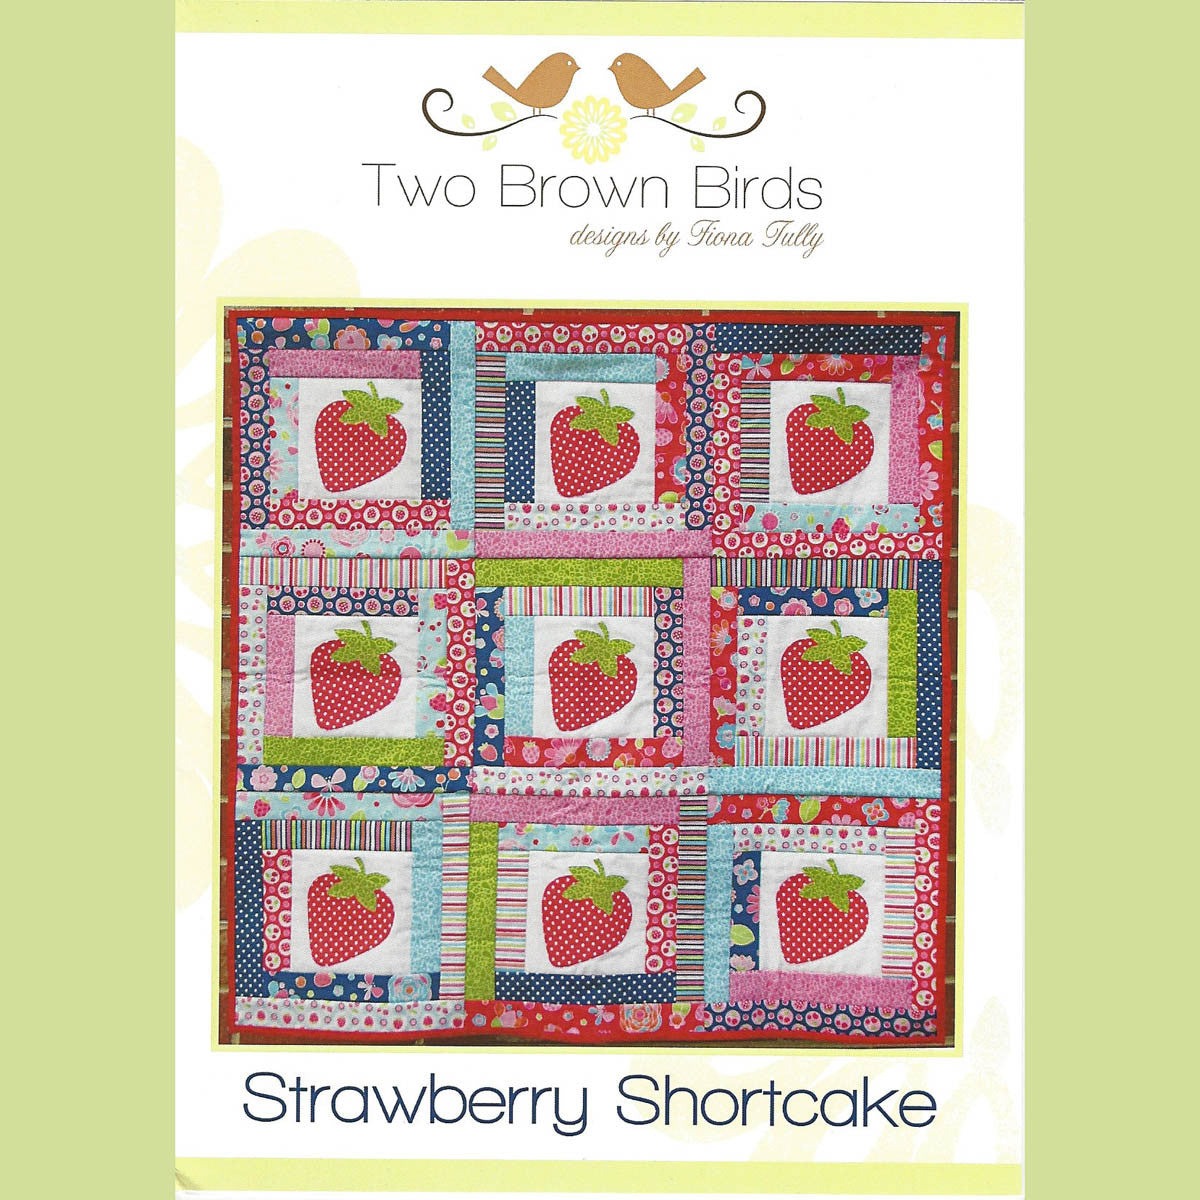 STRAWBERRY SHORTCAKE - Quilt Pattern - by Australian Designer Fiona Tully - brand Two Brown Birds